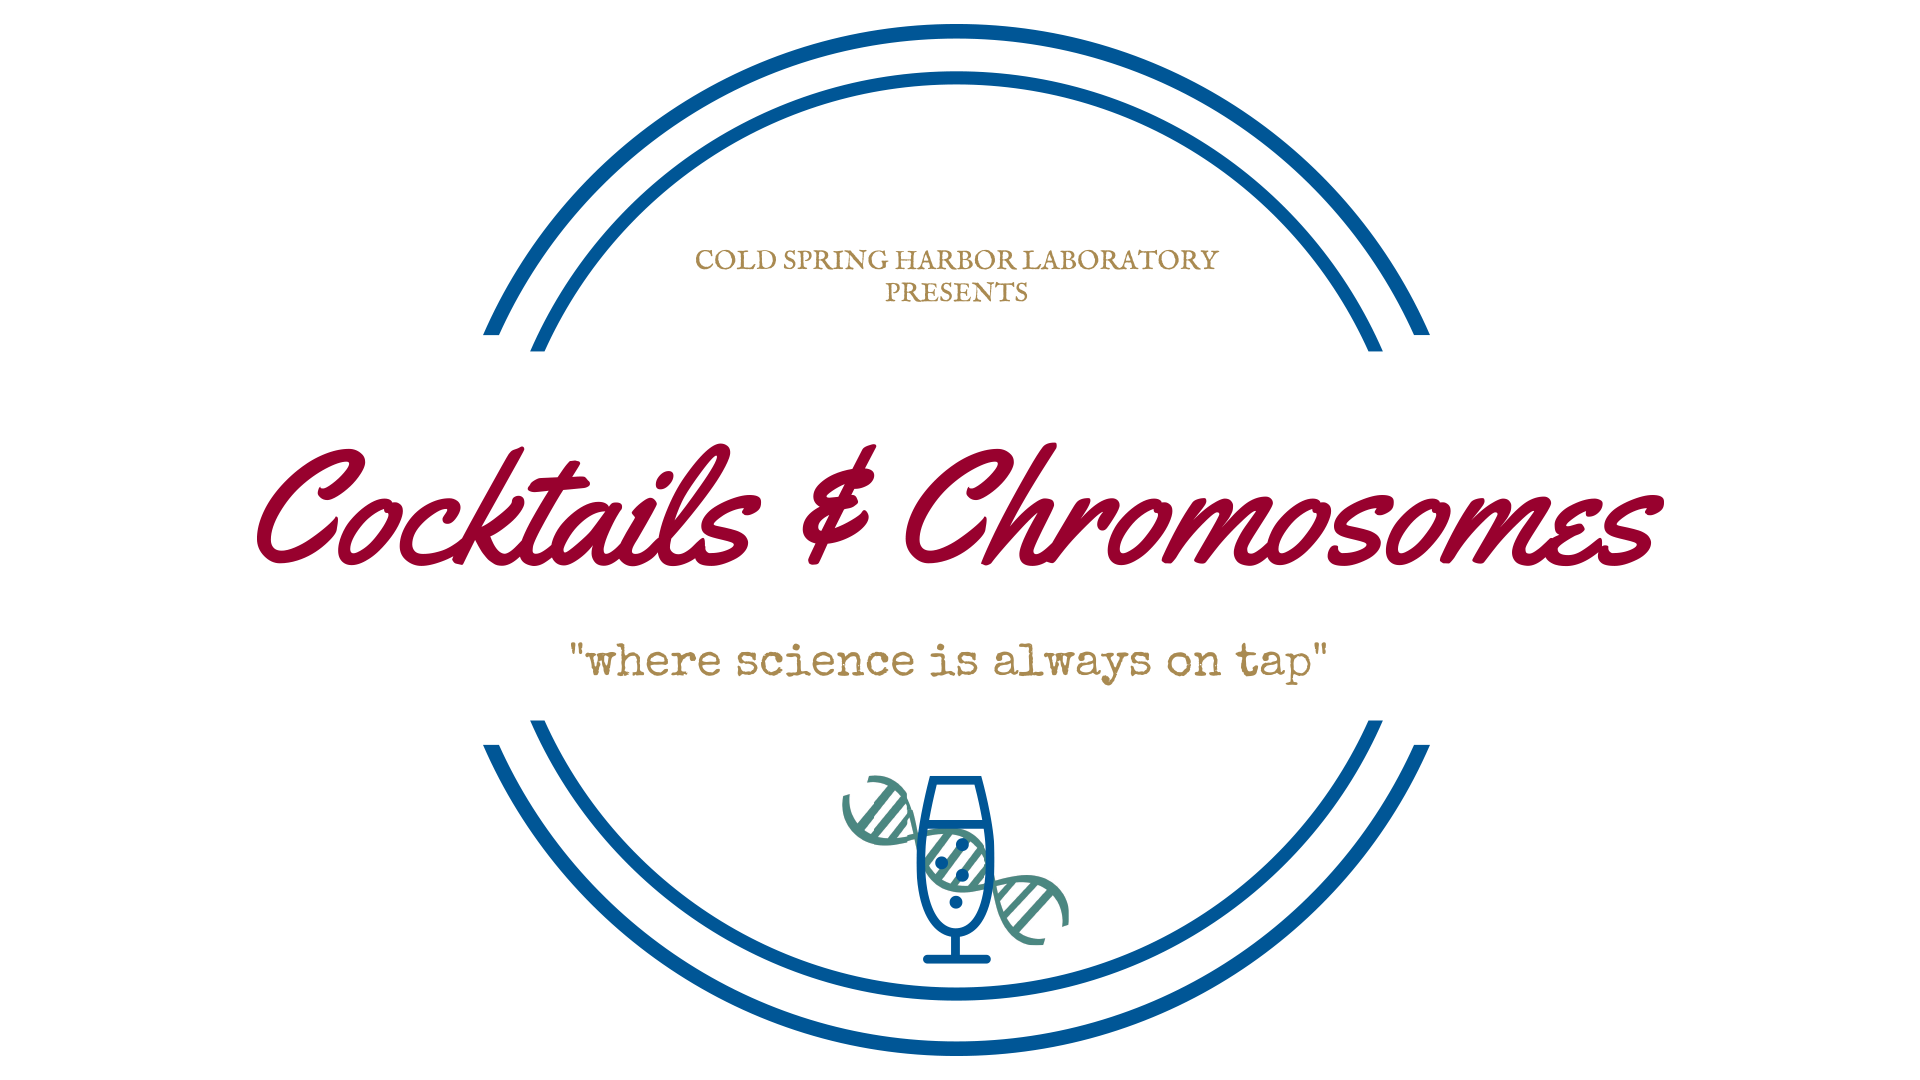 graphic of Cocktails & Chromosomes logo